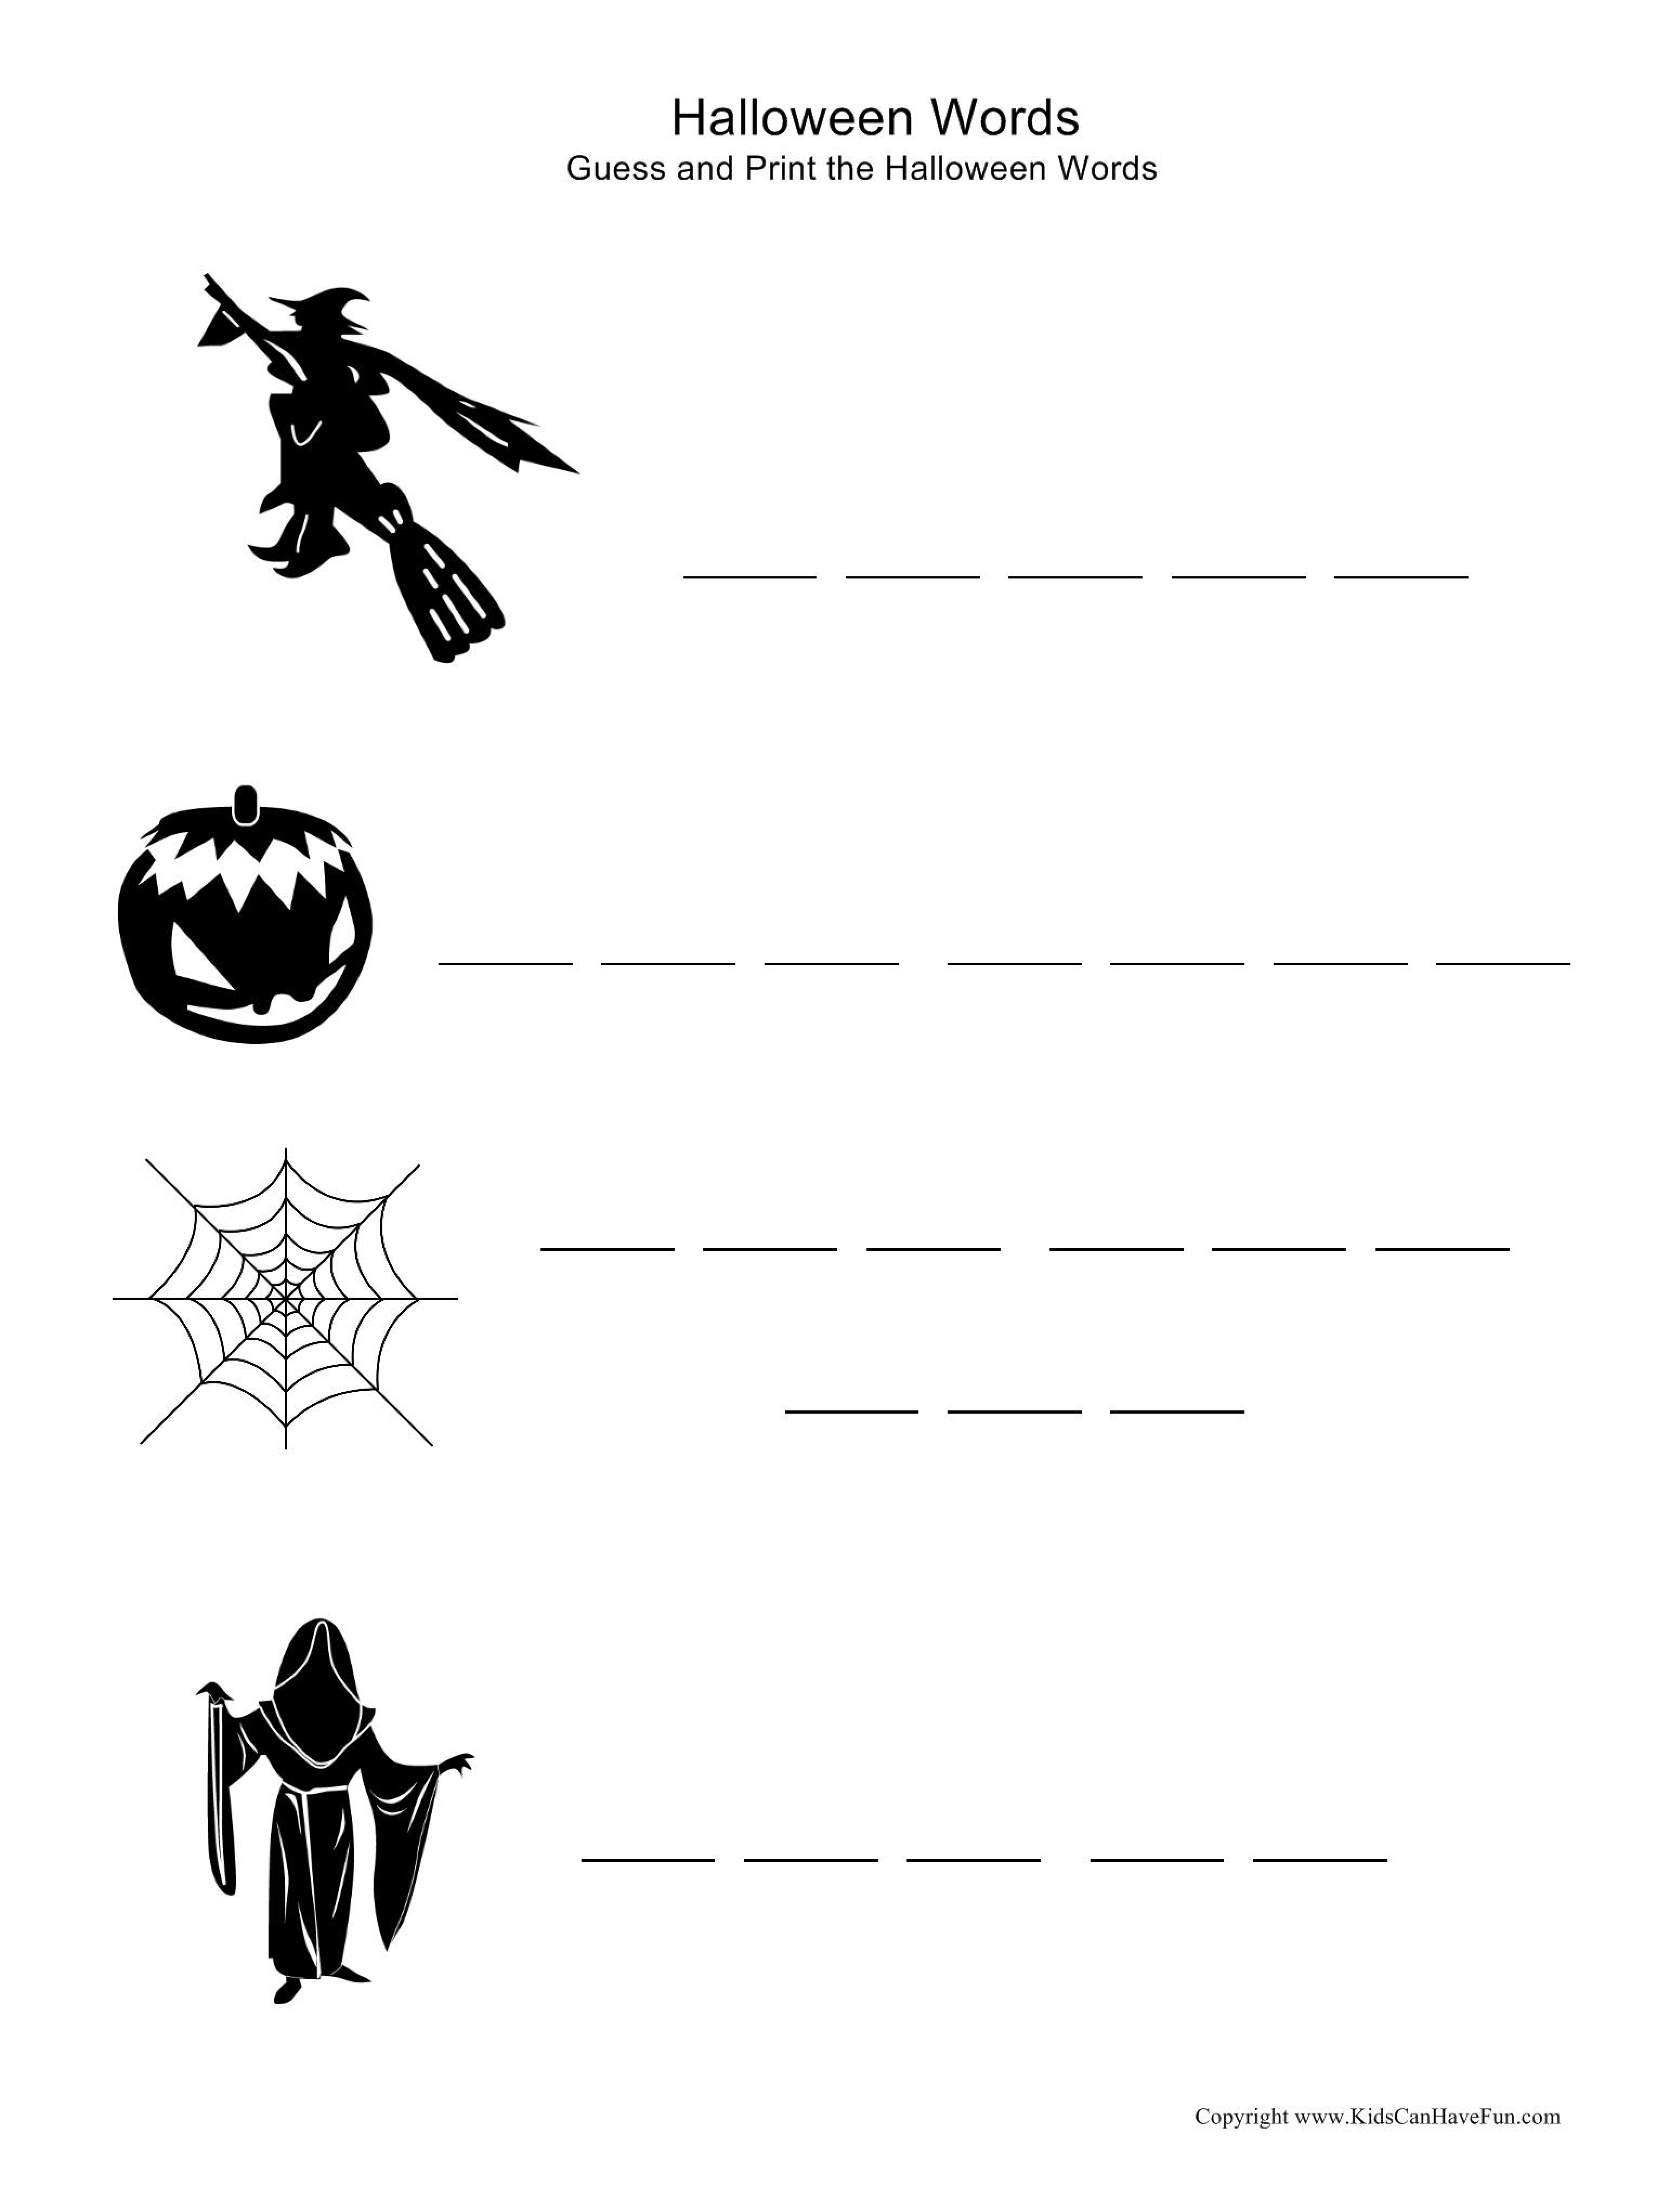 Guess And Print The Halloween Words To The Matched